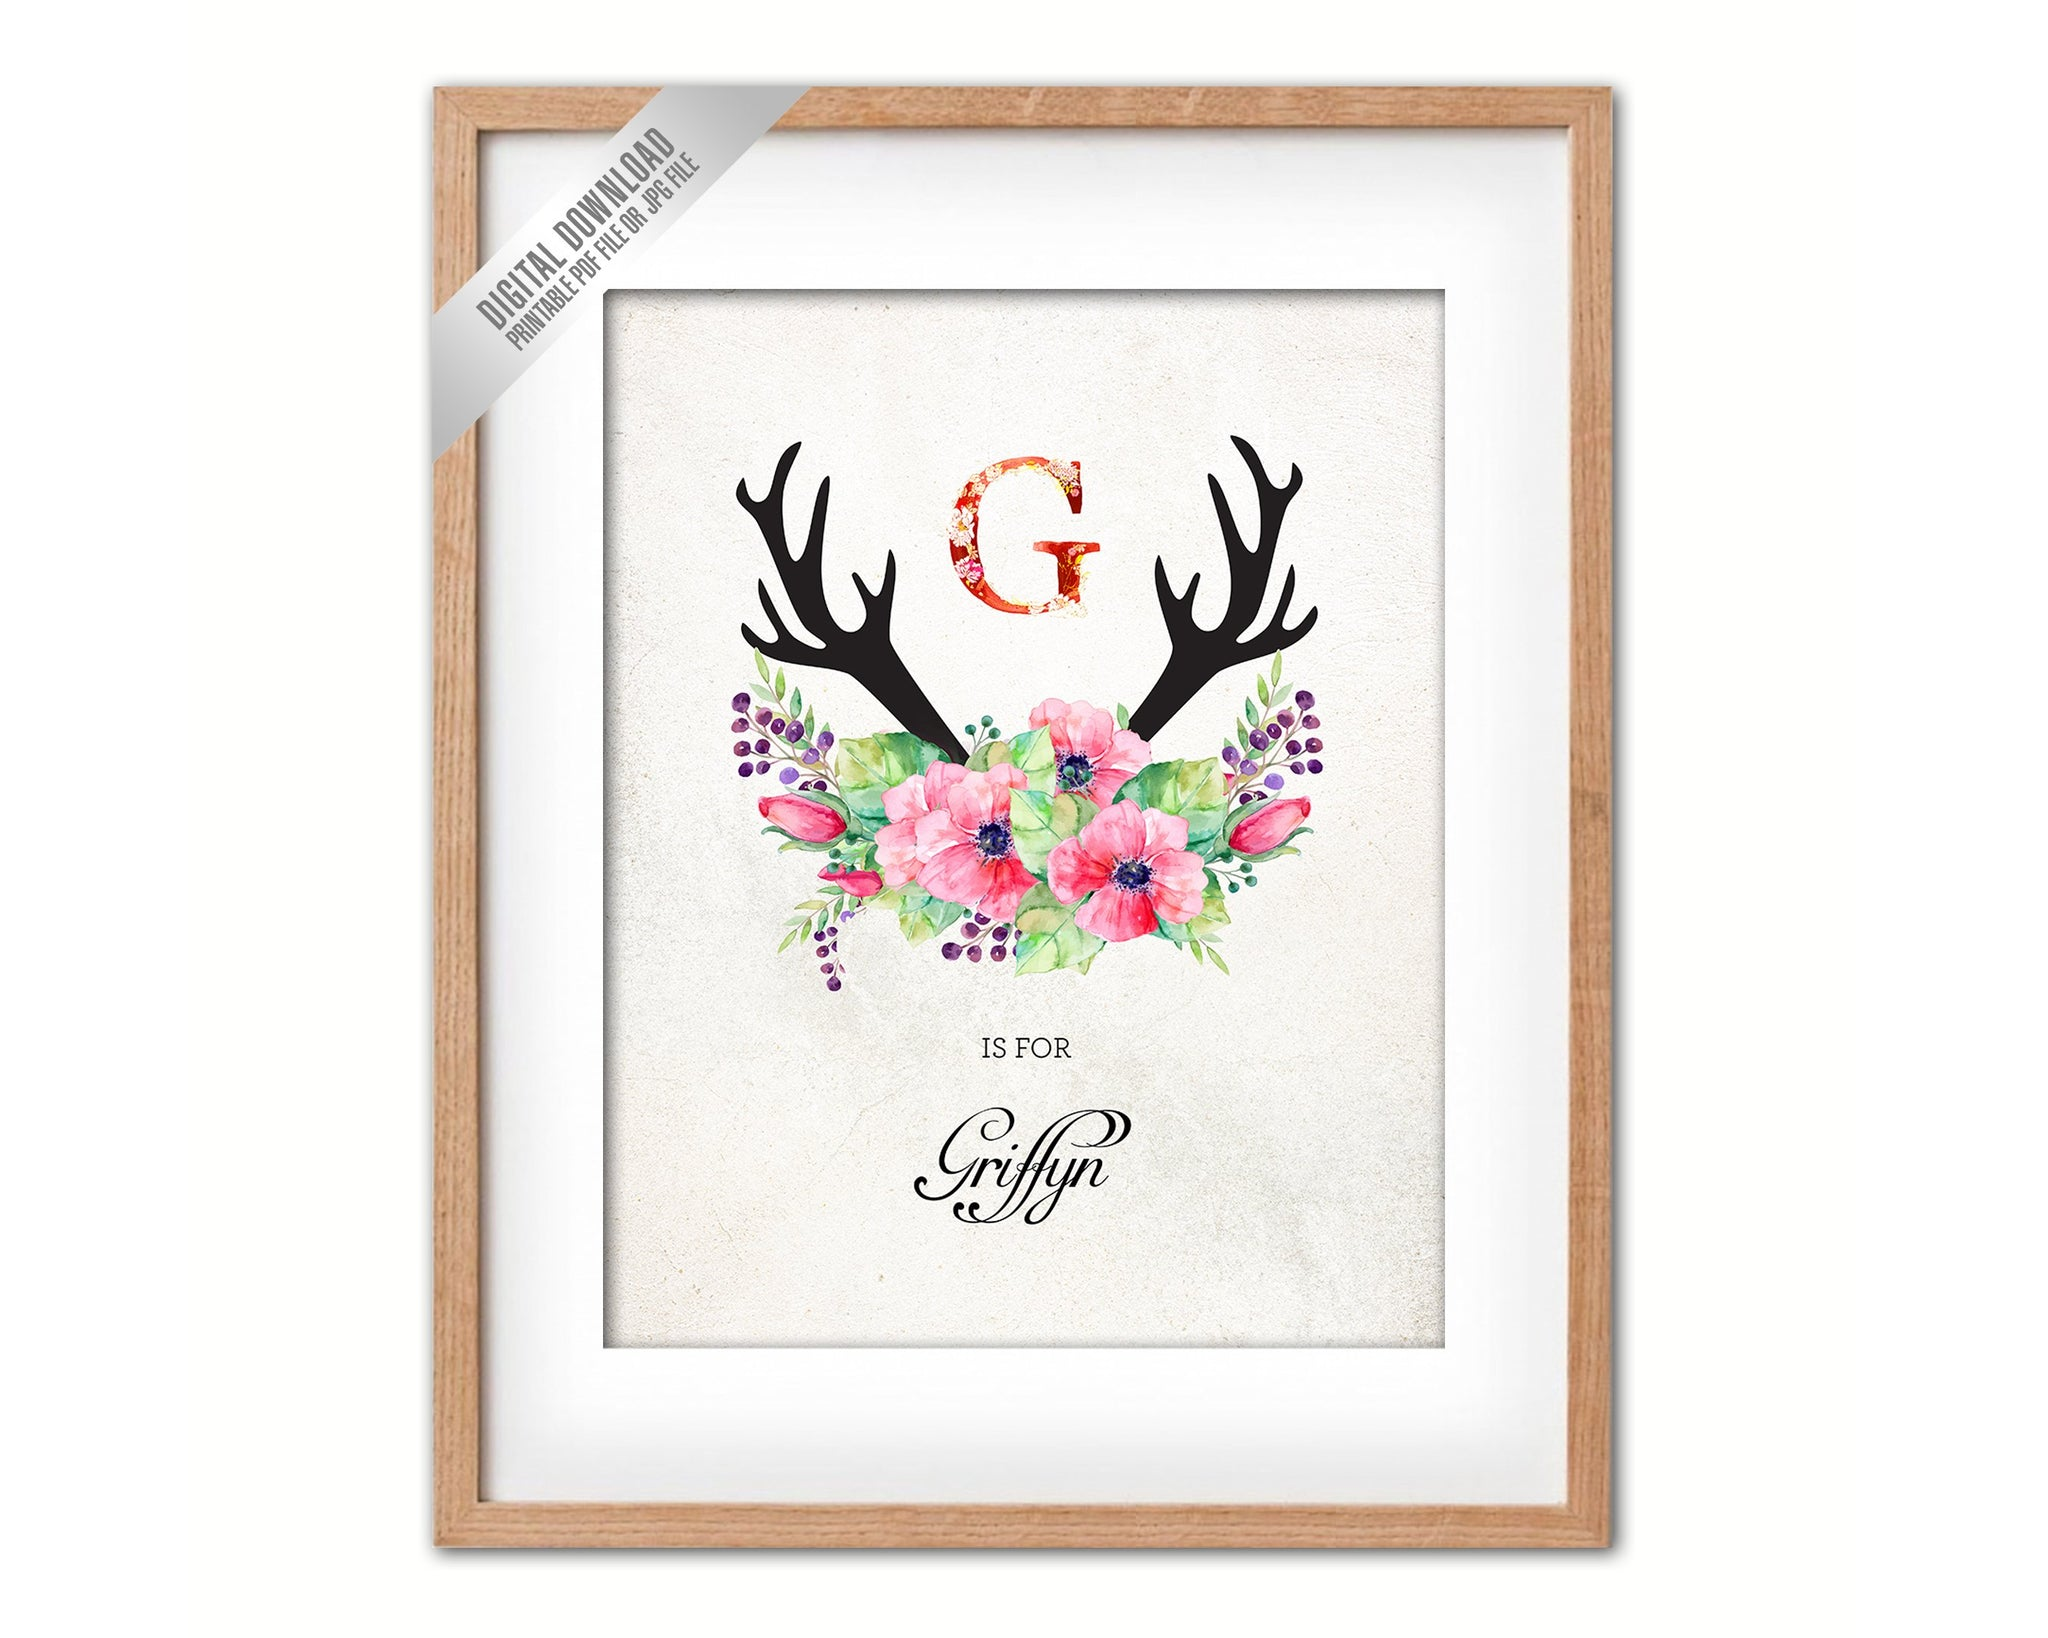 Initial Letter G Name Wall Art Printable Home Decor Baby Girl Room Watercolor Flowers Floral Gift for Her Digital Download